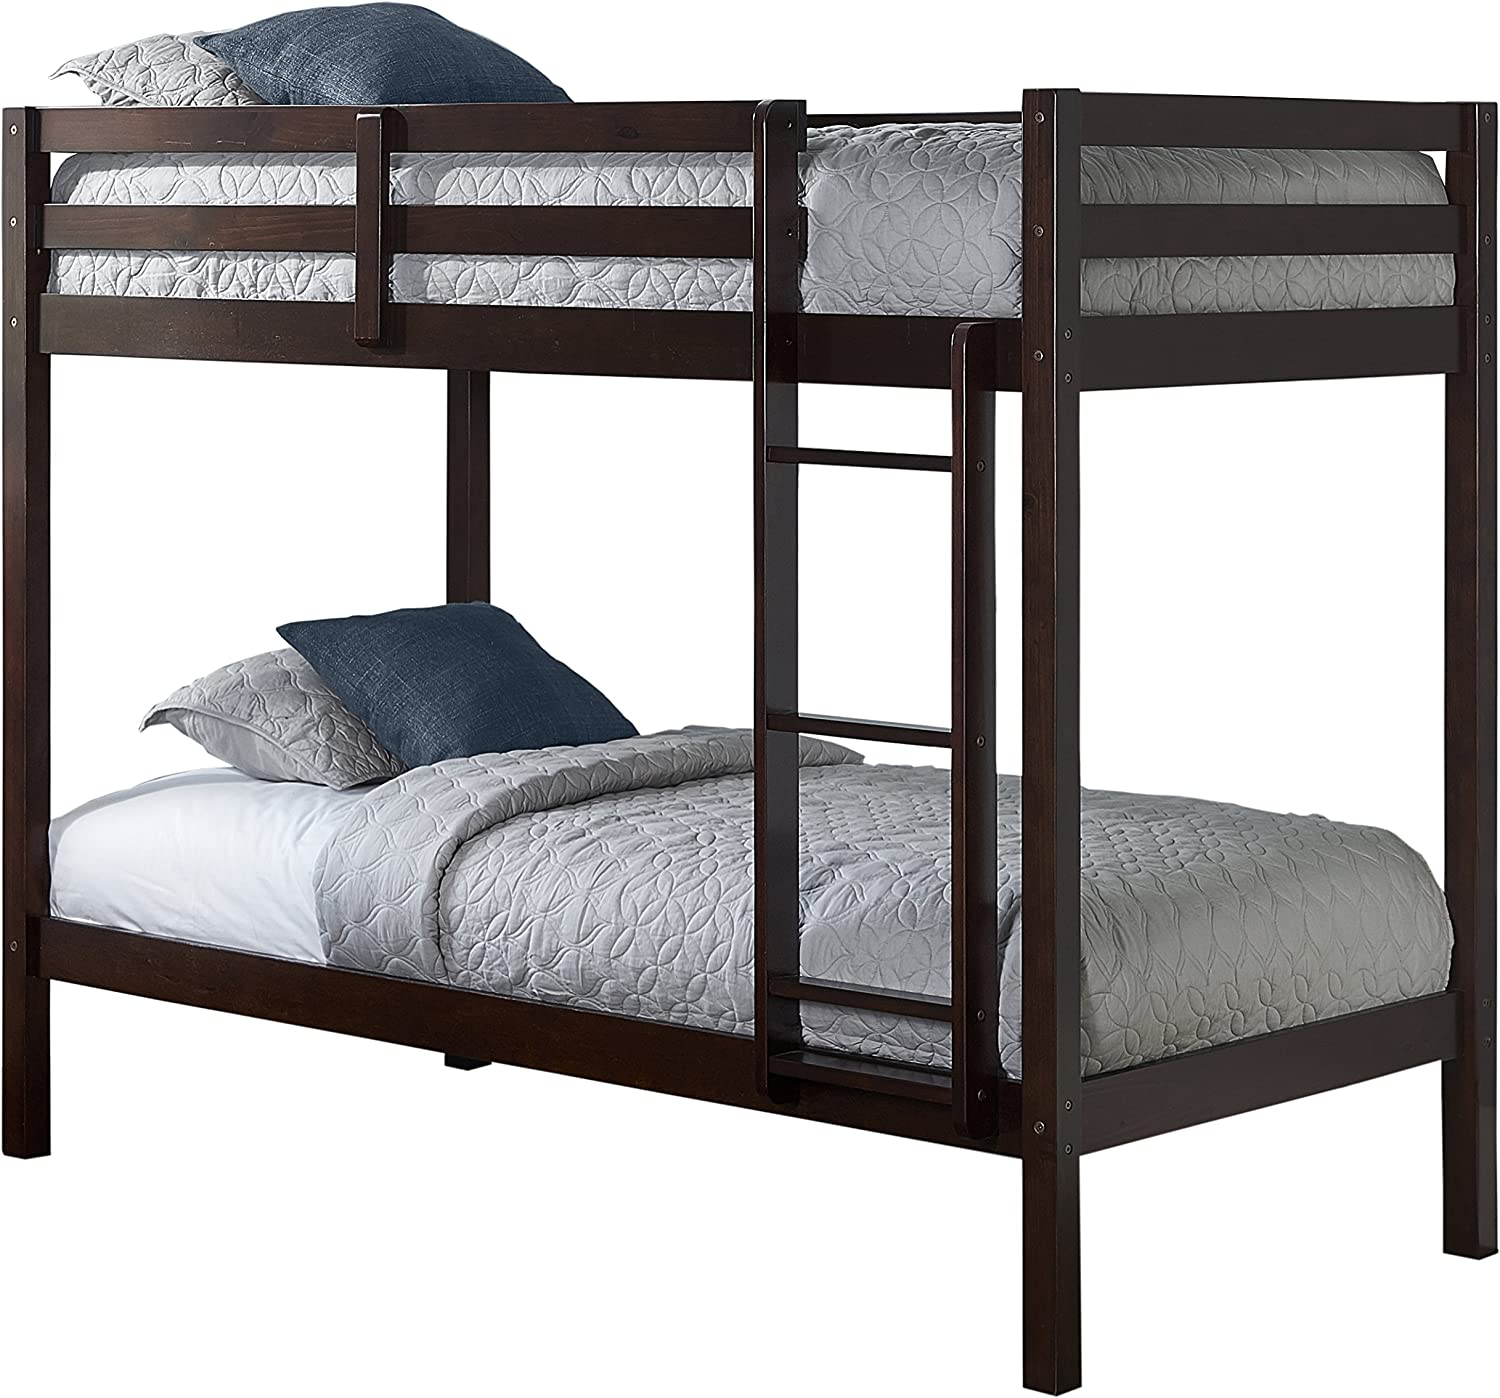 Hillsdale Kids and Teens Caspian, Chocolate Twin Bunk Bed